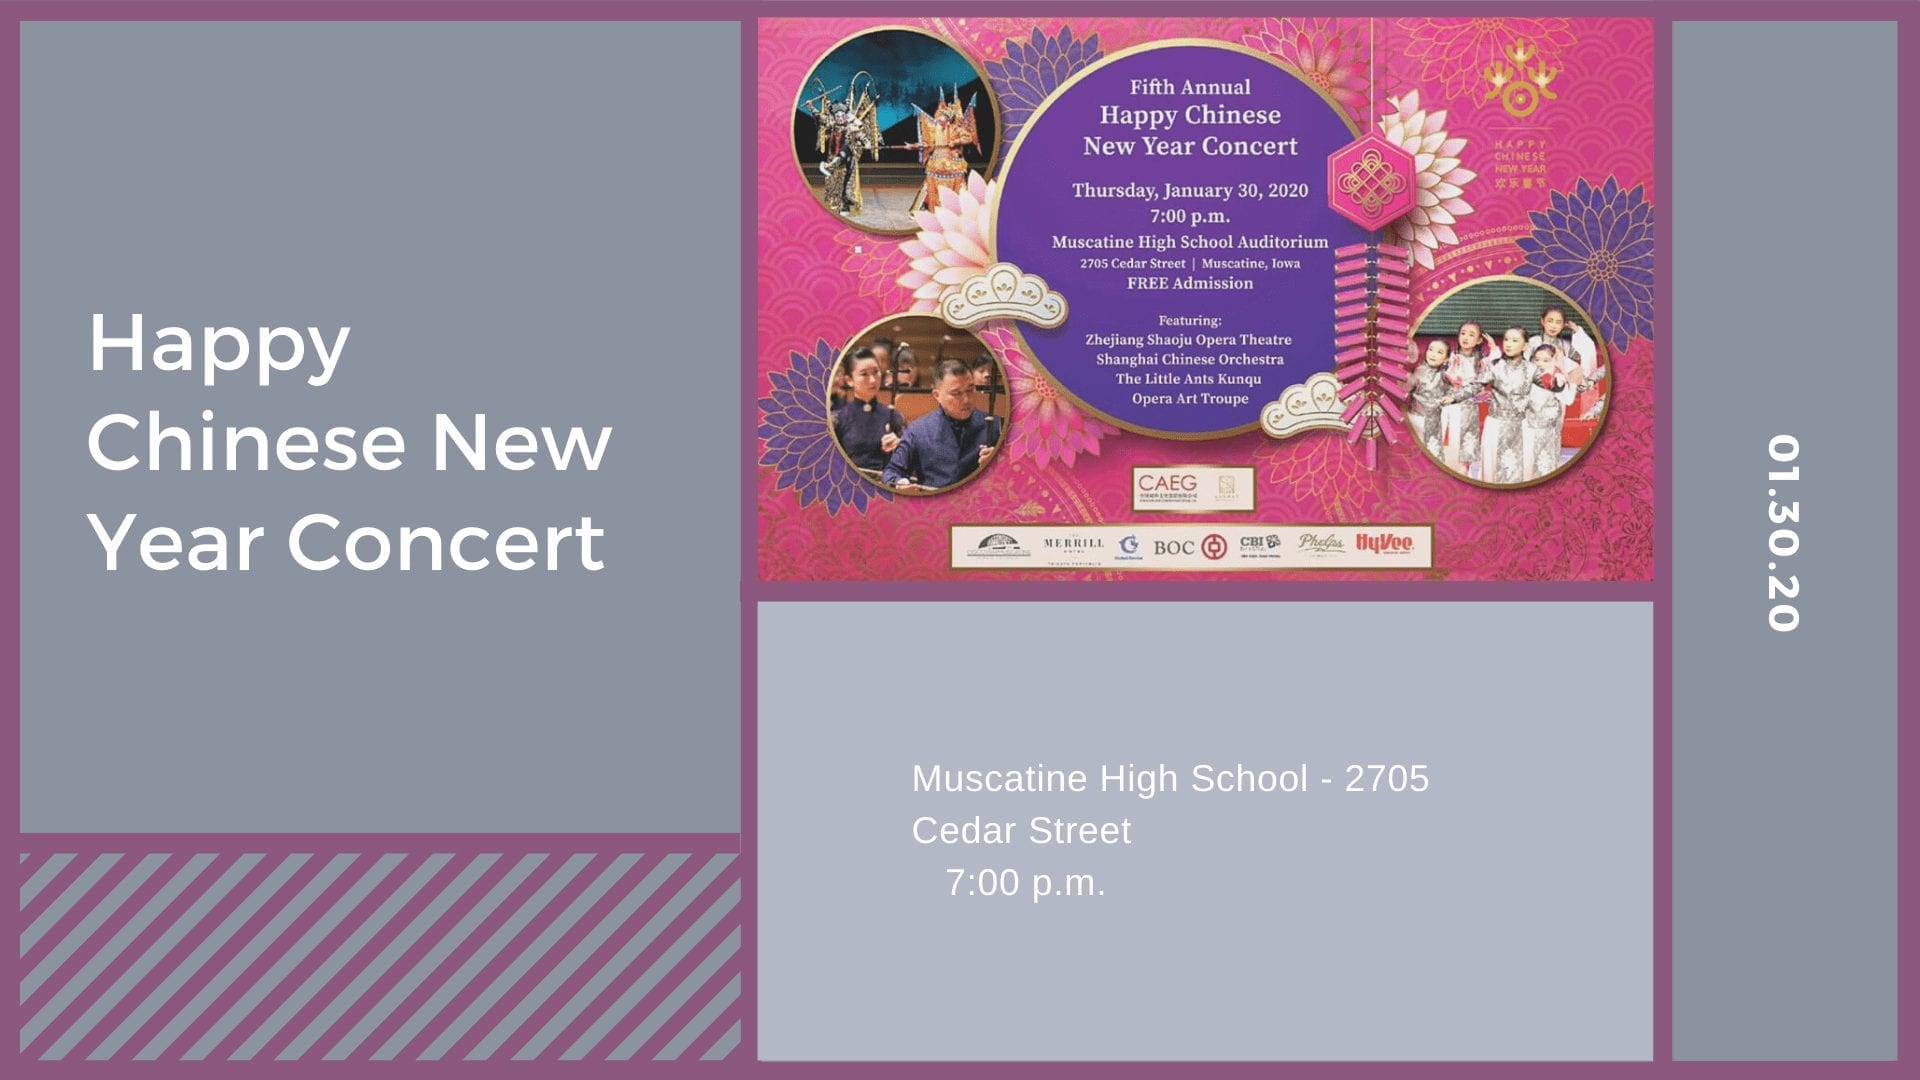 Happy Chinese New Year Concert